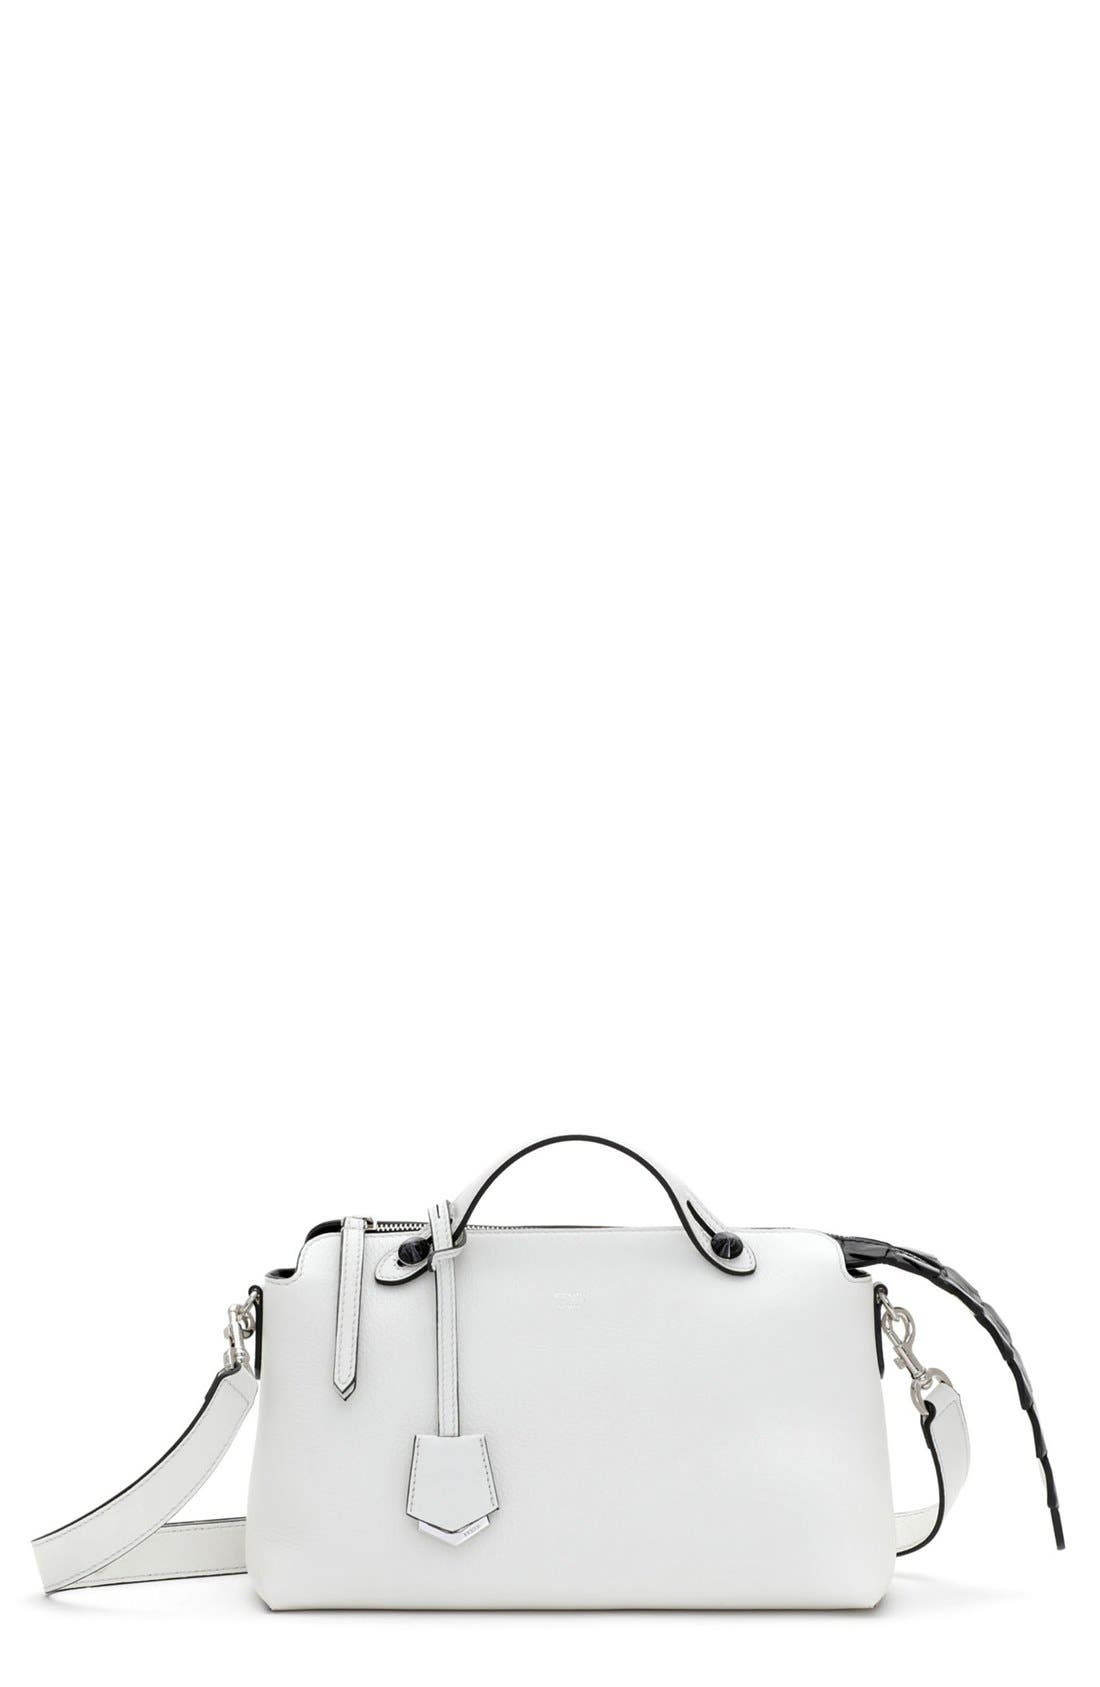 Main Image - Fendi 'Small By the Way - Croc-Tail' Convertible Leather Shoulder Bag